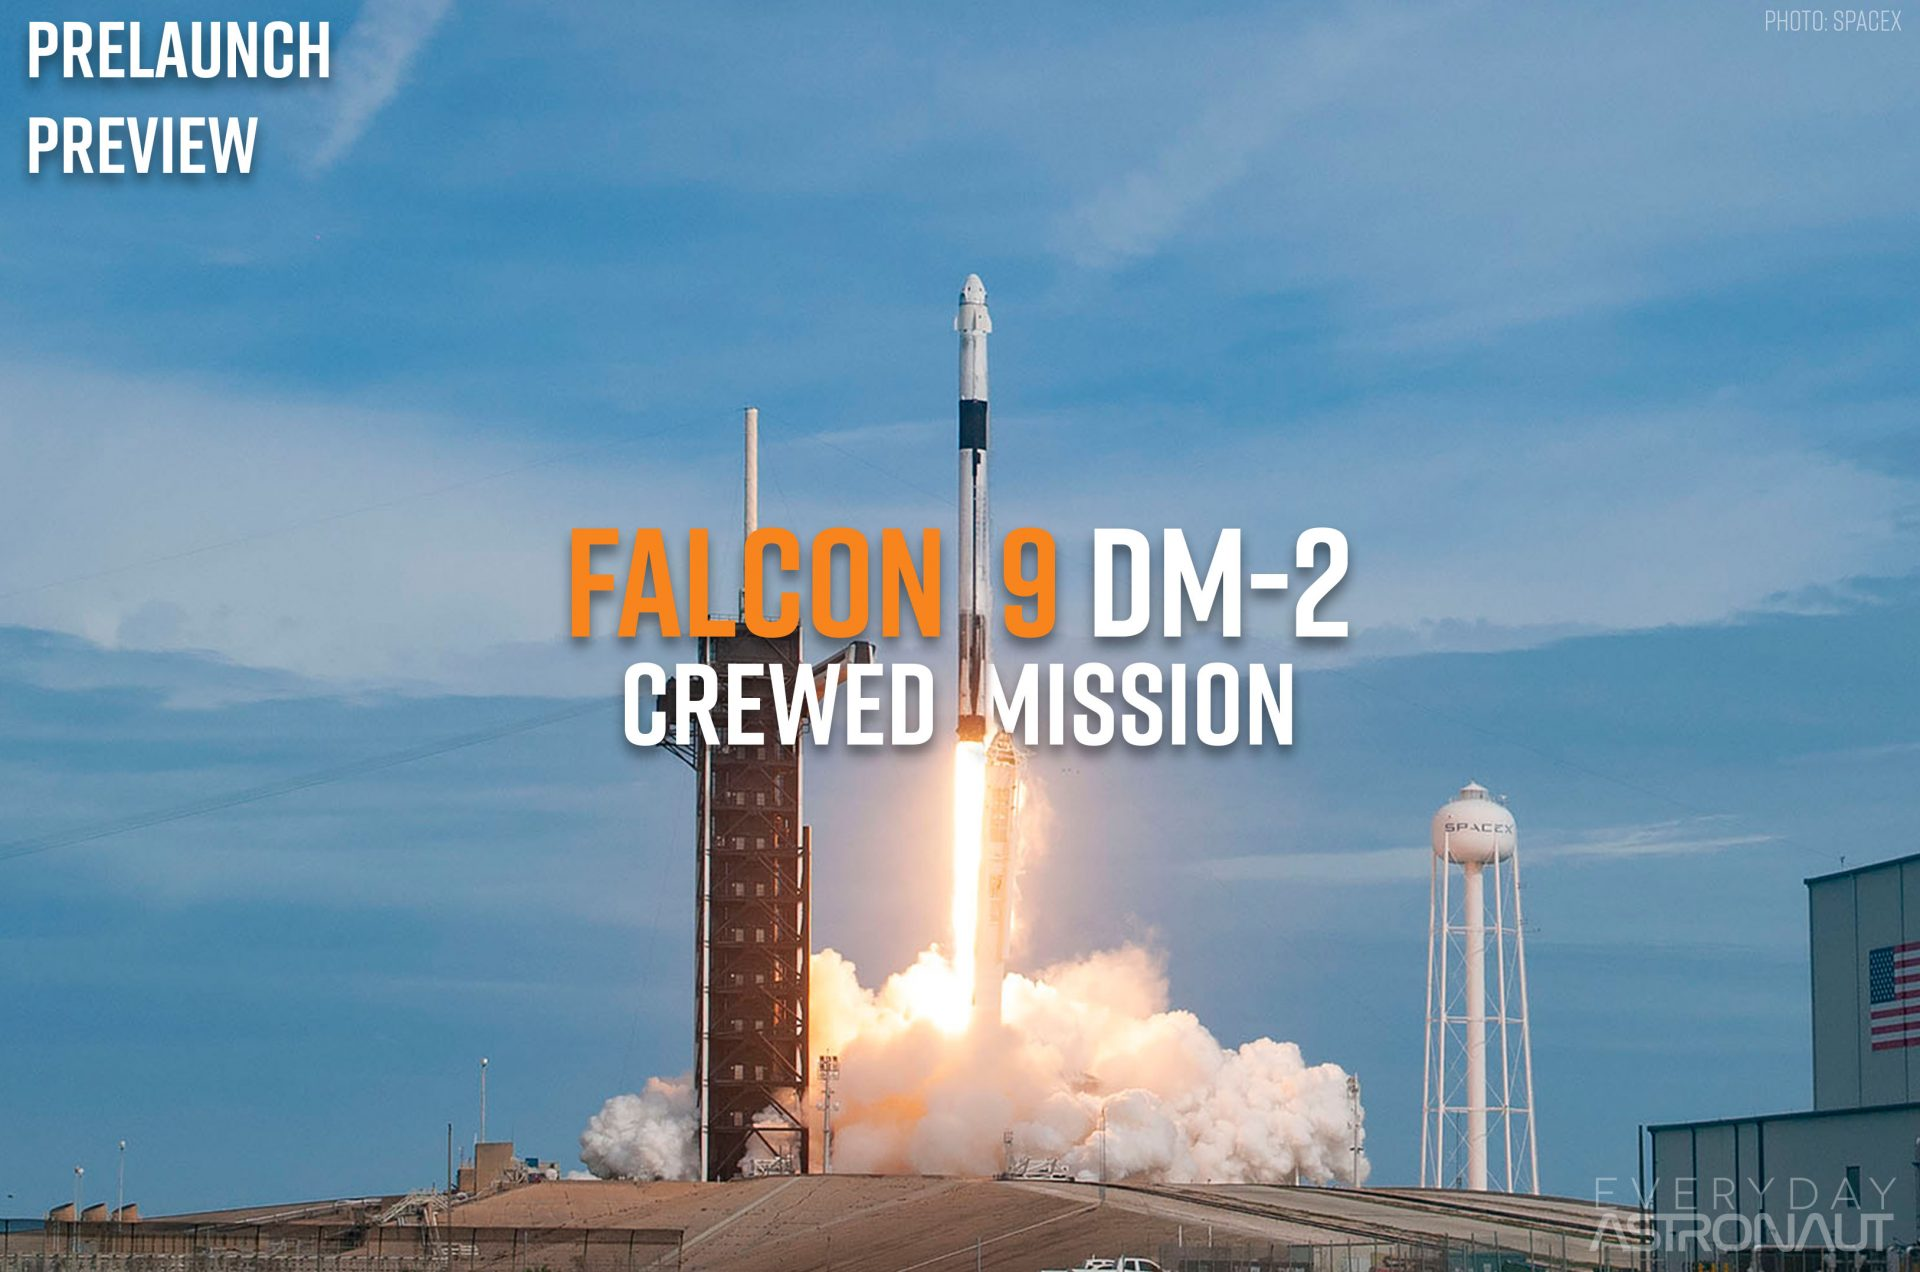 Dragon 2 Dm-2  Spacex U0026 39 S First Crewed Mission